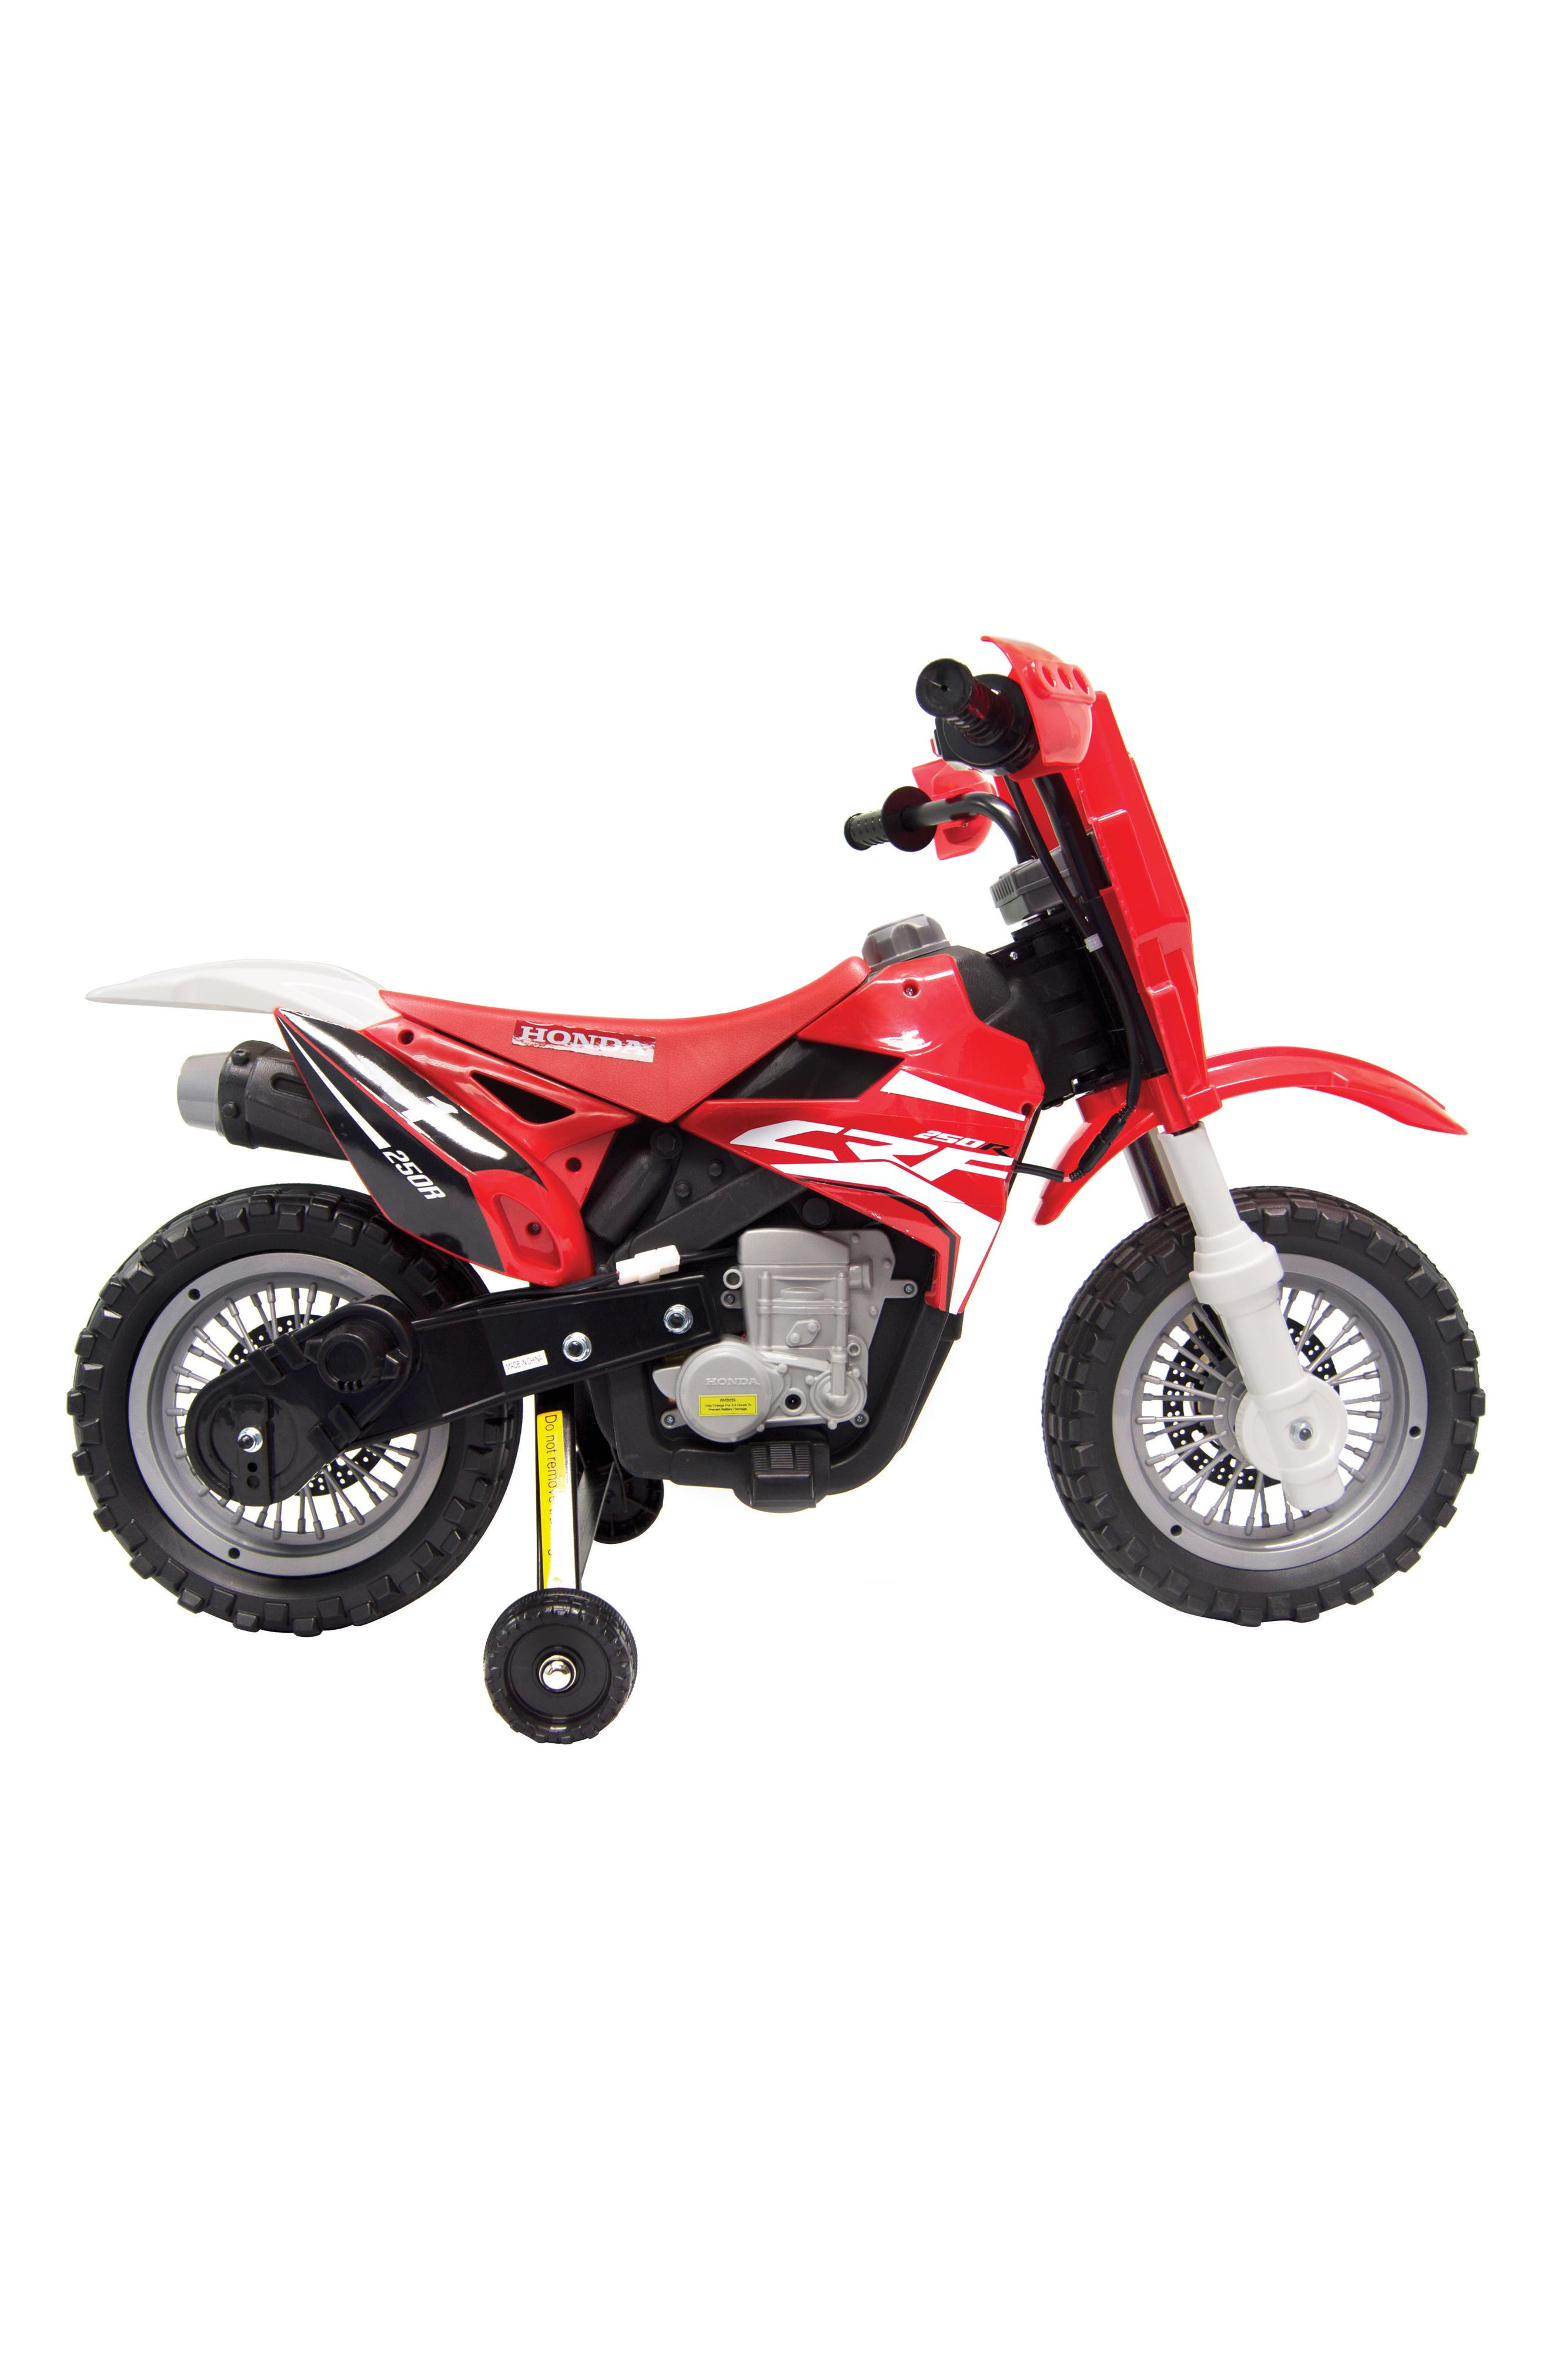 Honda Dirt Bike Ride-On Toy Motorcycle,                             Alternate thumbnail 3, color,                             RED